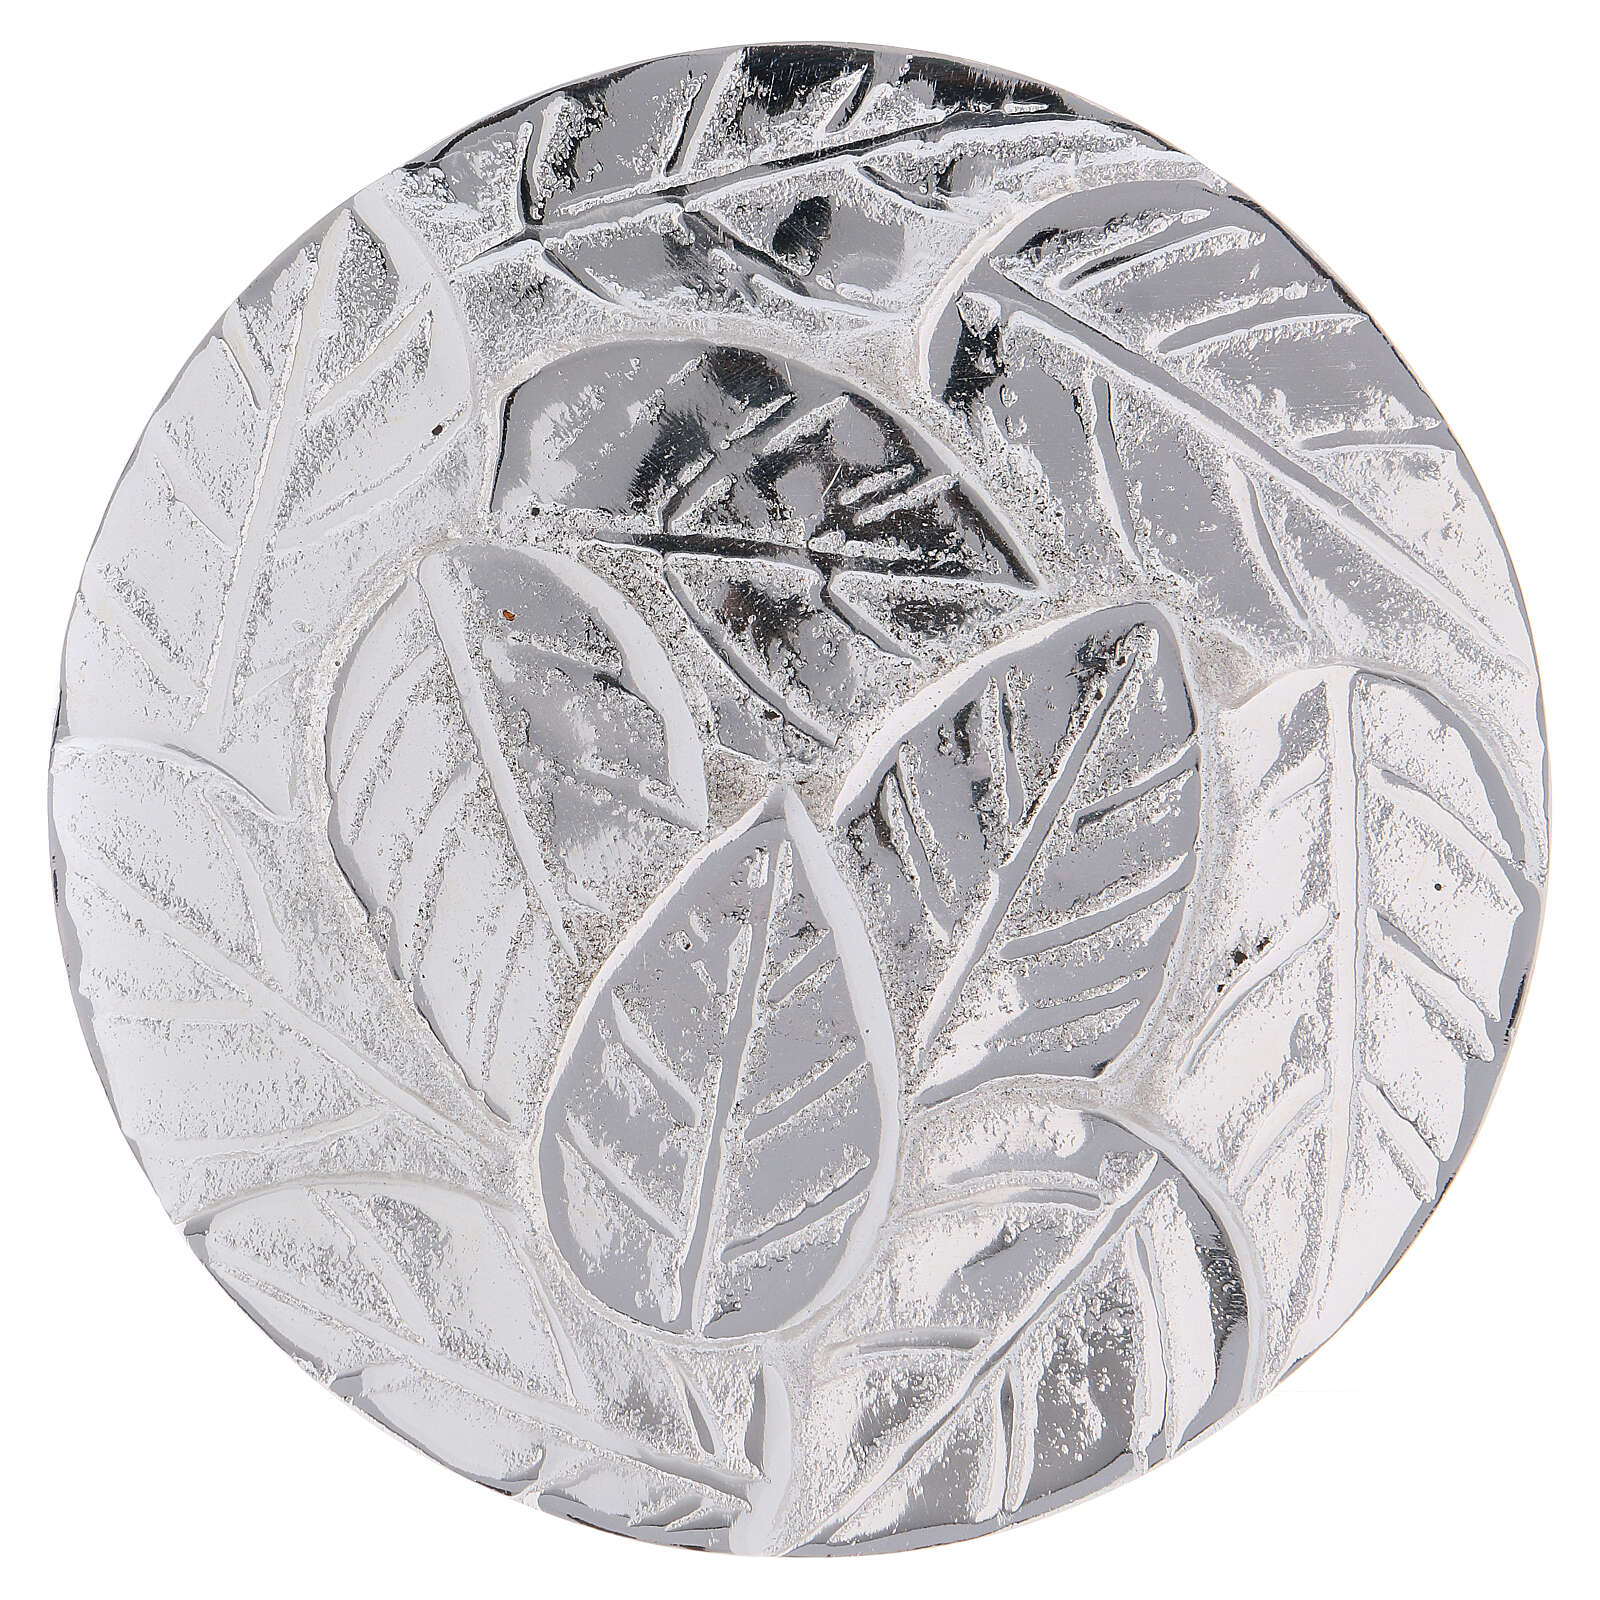 Candle holder plate decorated with leaves silver-plated aluminium 3 1/2 in 3